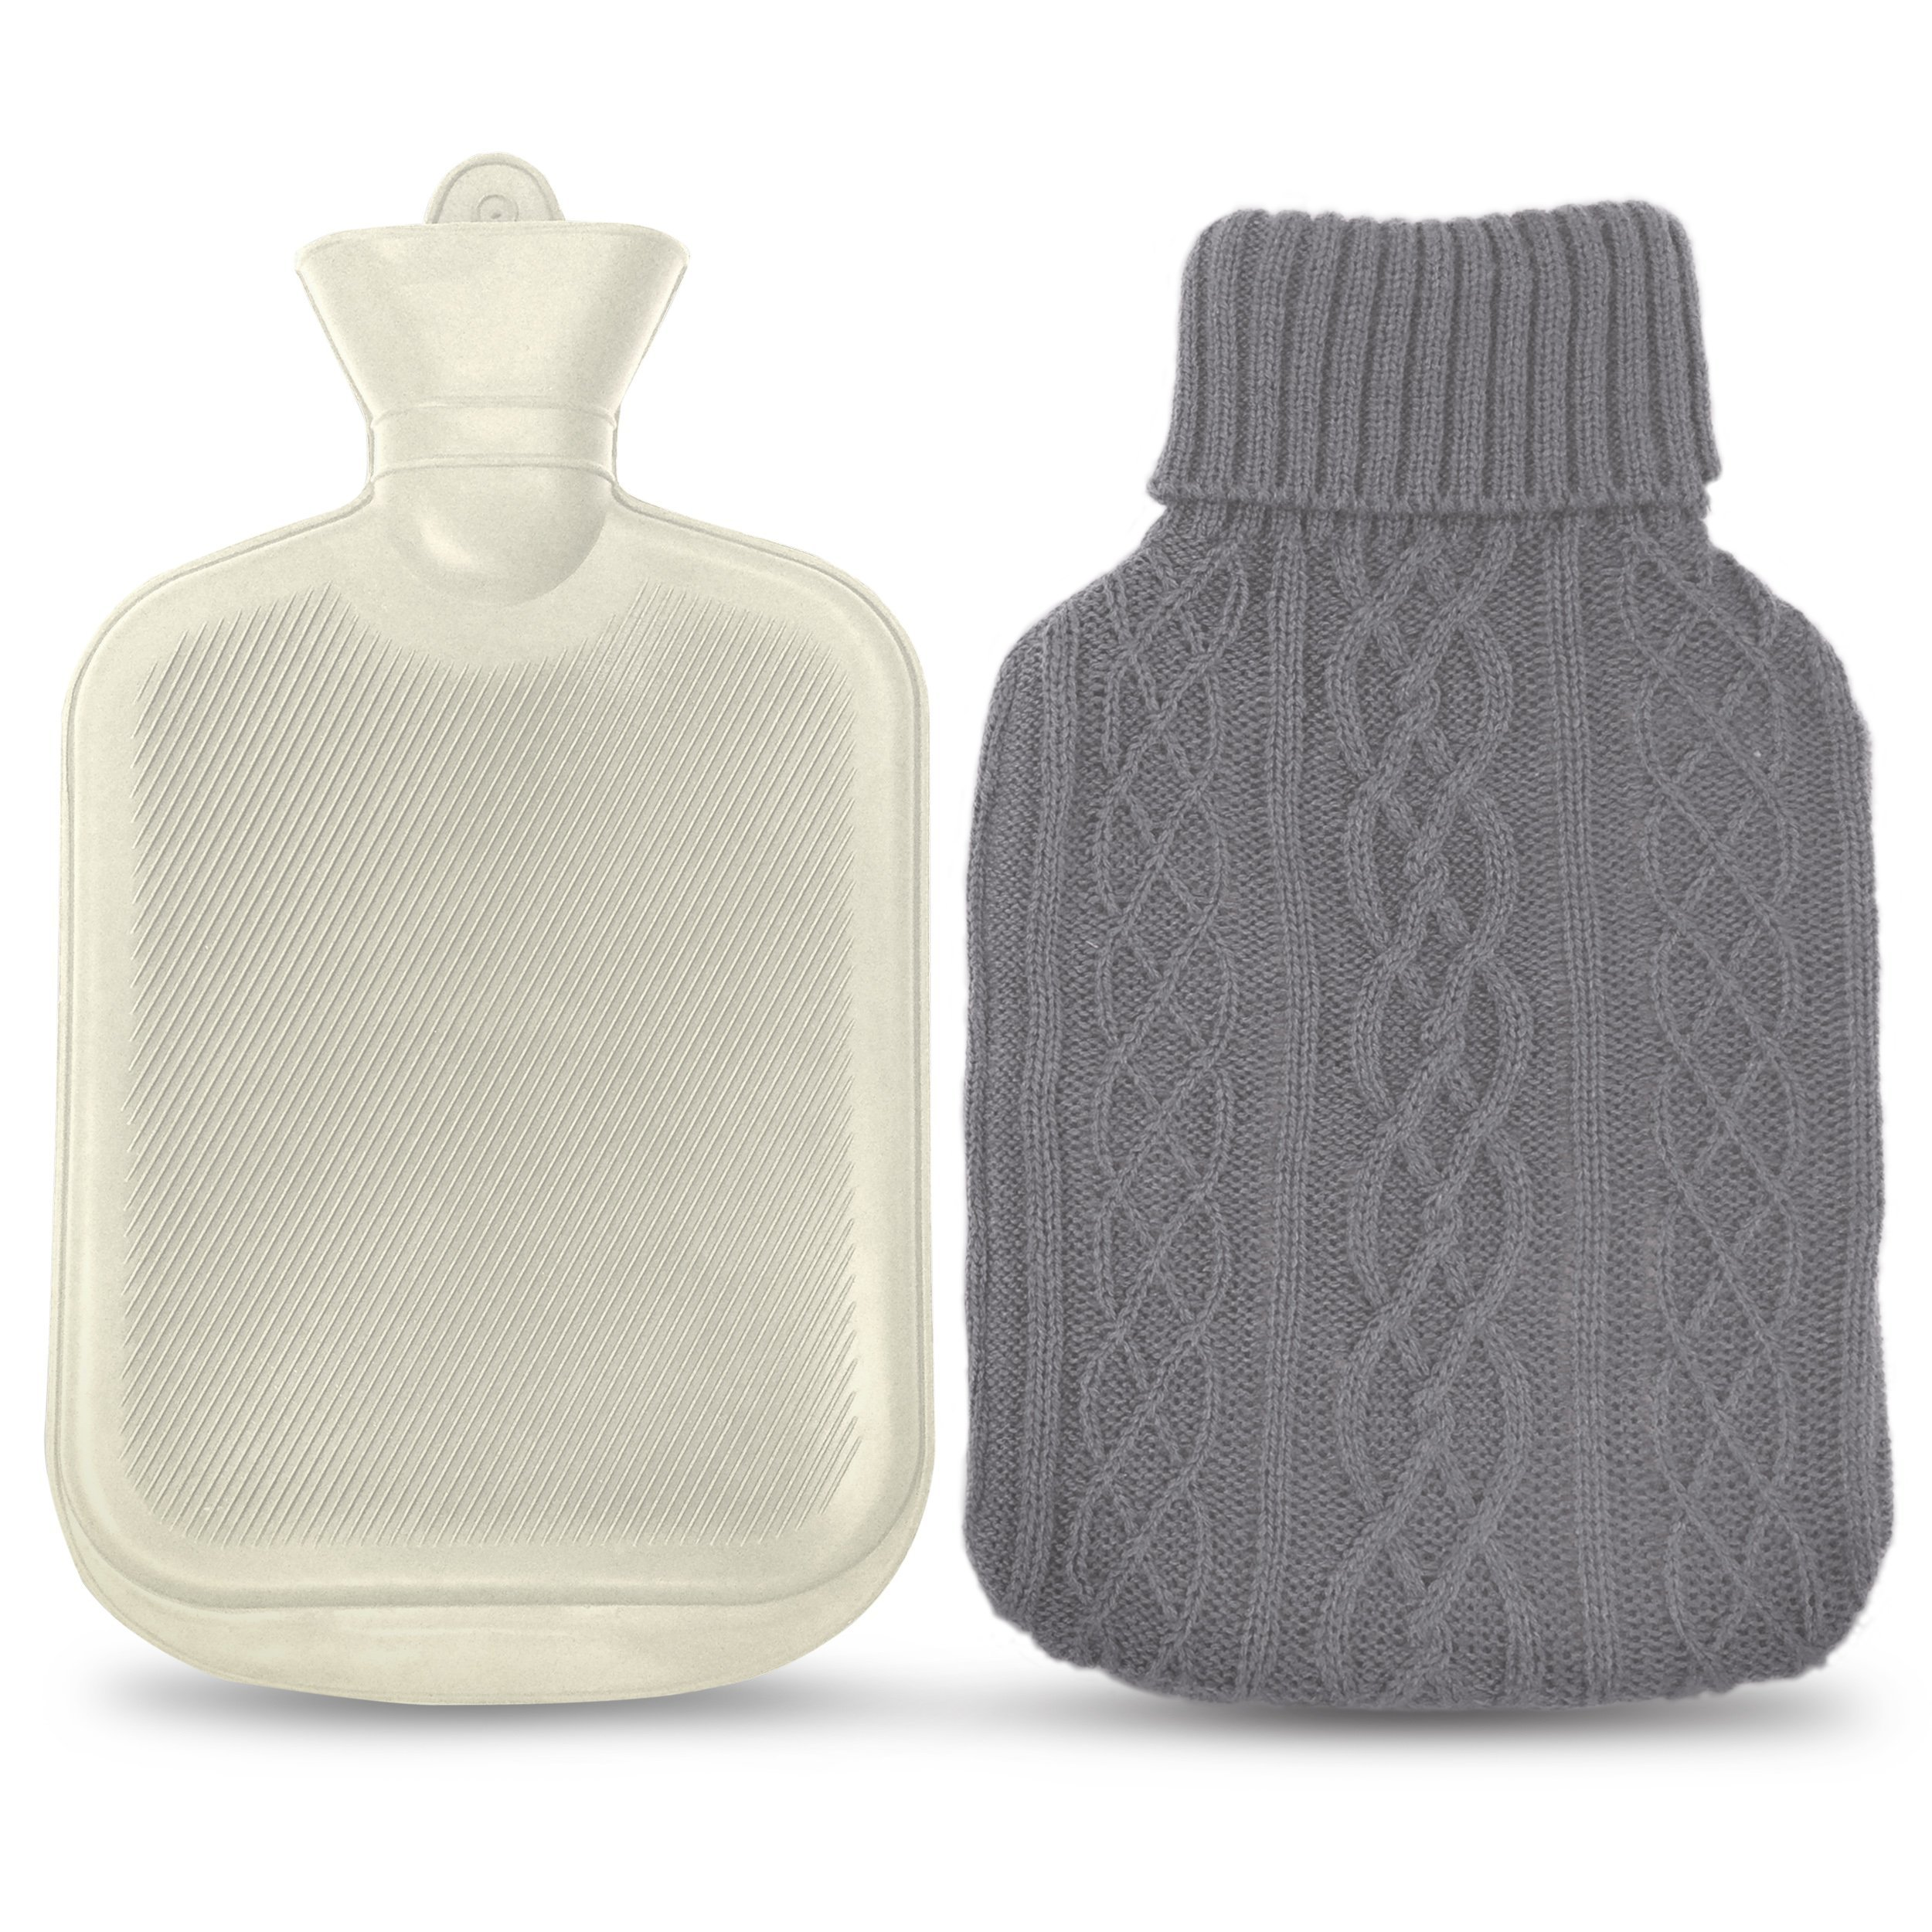 Amazon azmed classic hot water bottle made of premium rubber azmed classic rubber hot water bottle with knitted grey cover 2 liters white bankloansurffo Choice Image